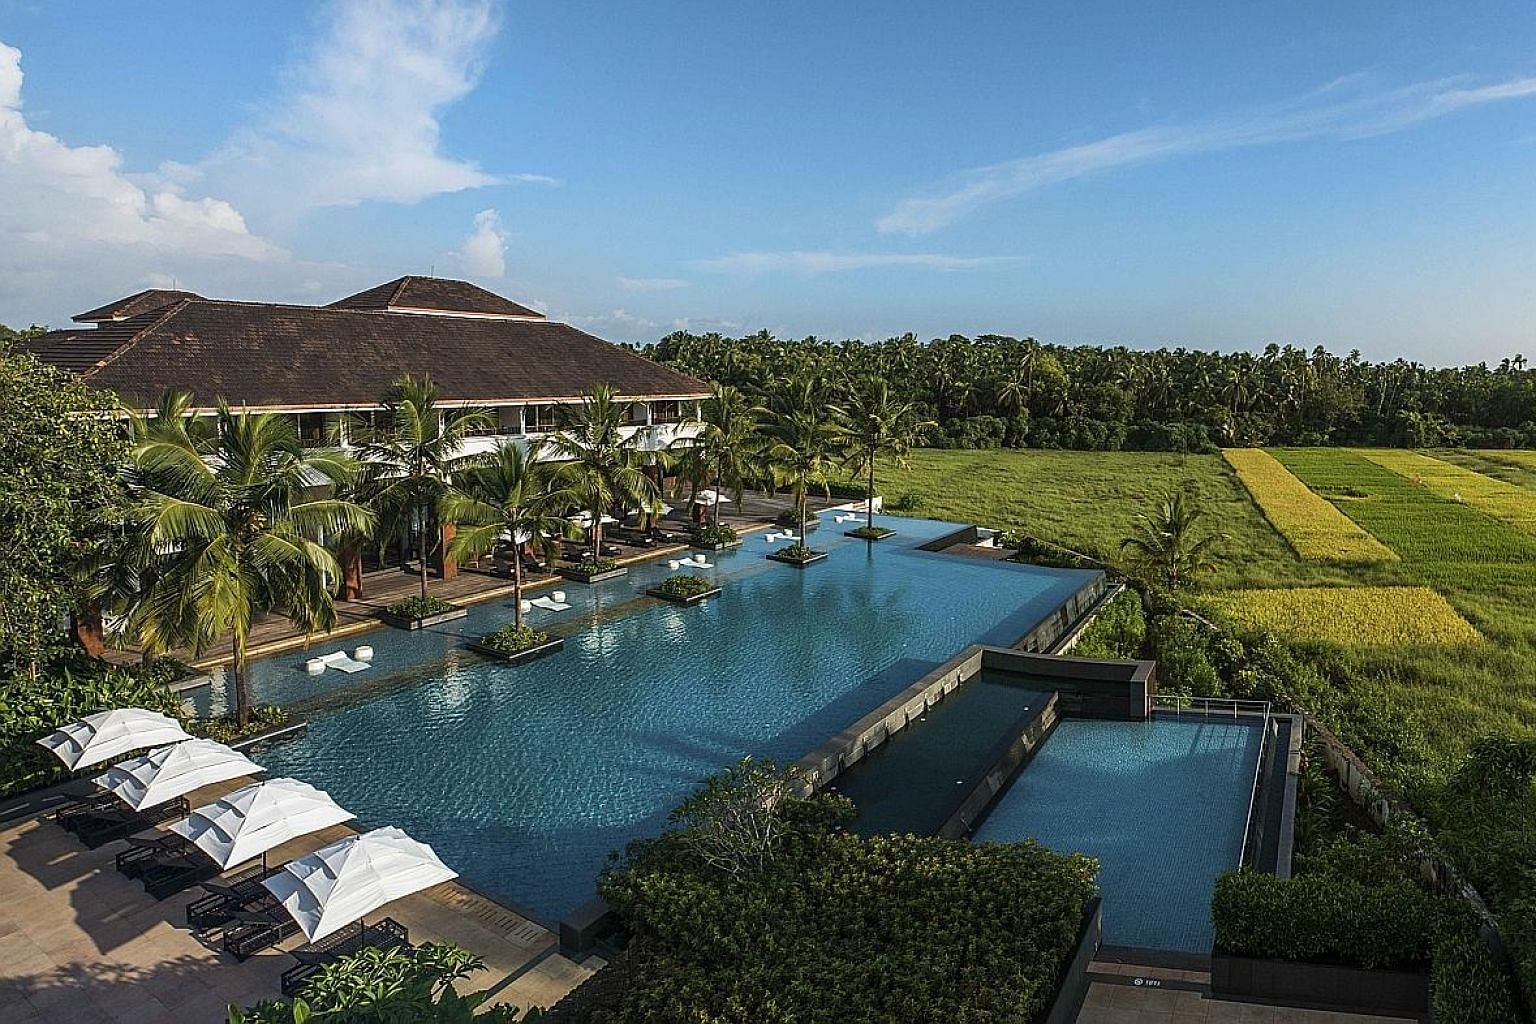 The Alila Diwa Goa resort has launched a new package that will provide fun for the whole family. Relax at Bintan Lagoon Resort with its new Chillax Package.